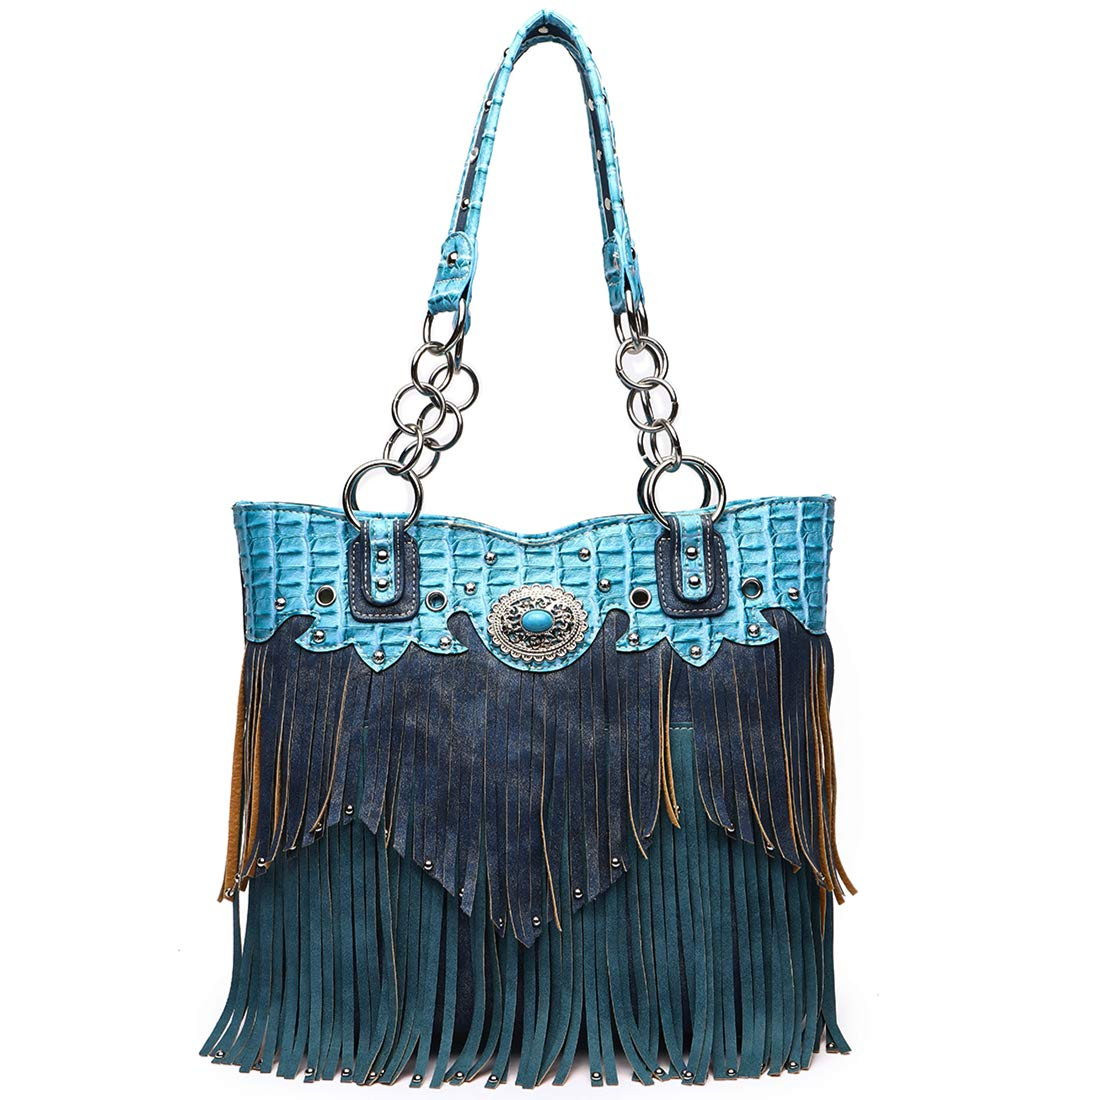 Western Style Fringe Handbag Concealed Carry Purse Country Large Tote Conchos Purse Women Shoulder Bag (Turquoise)